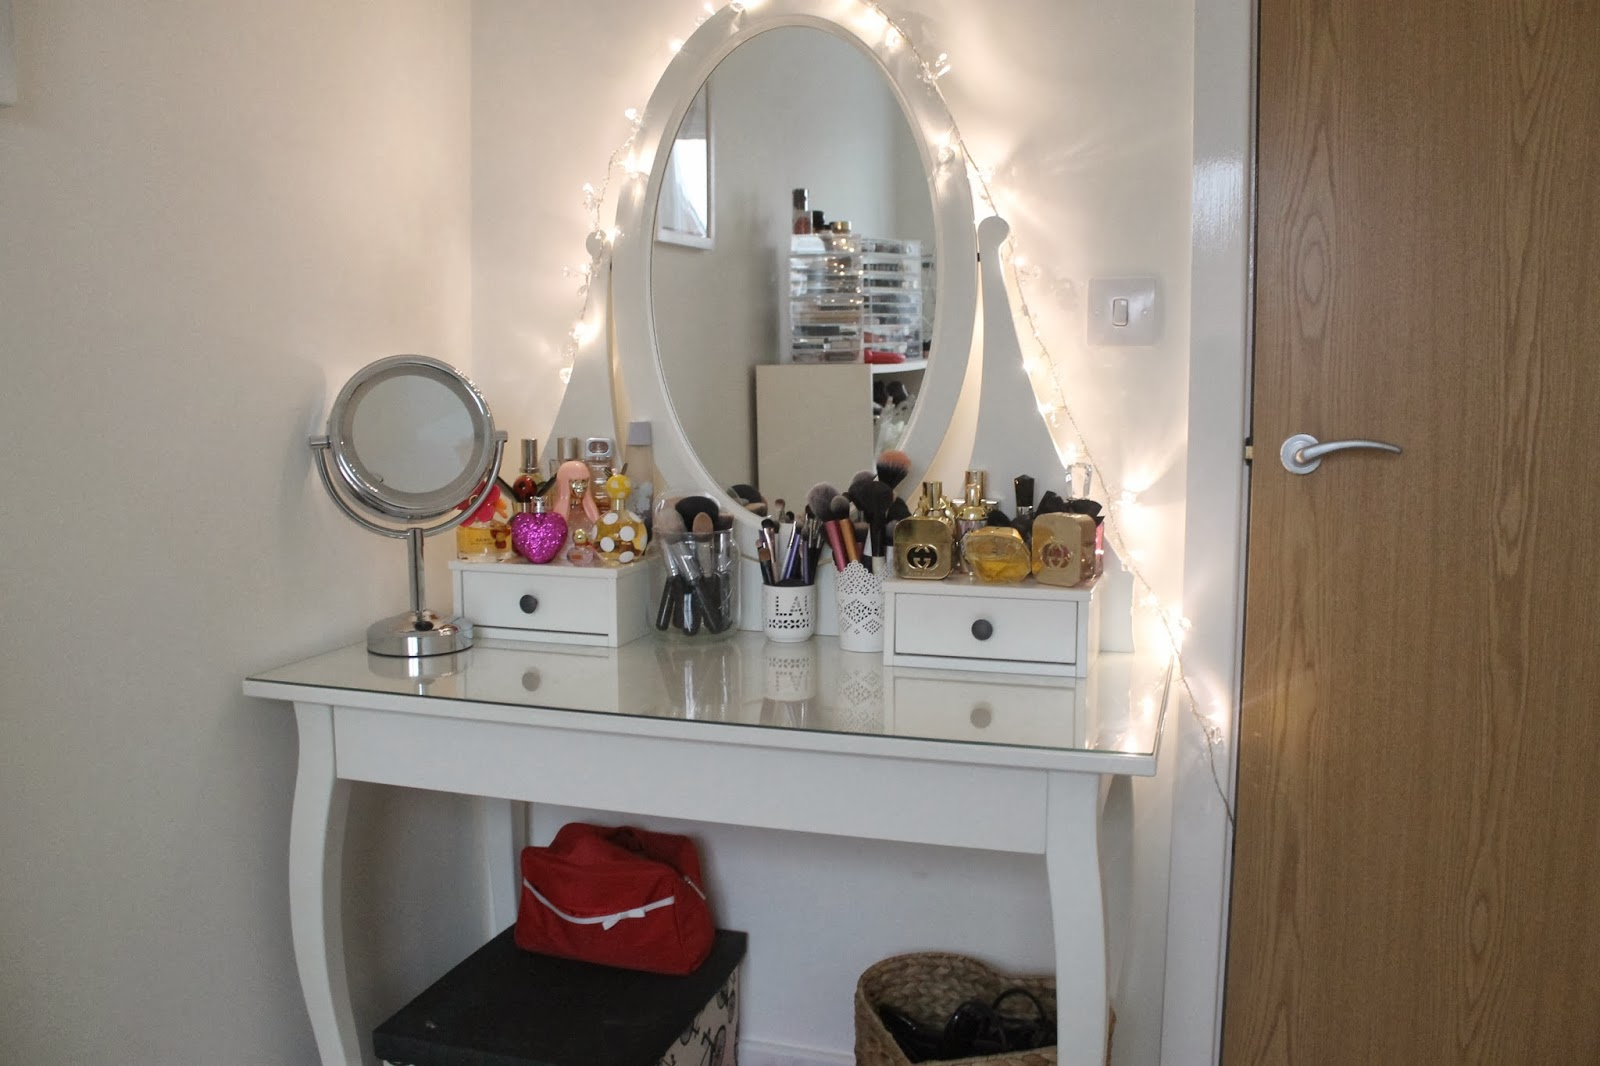 makeup vanity table mirror with lights lighting 0. Makeup Table Ikea Varnished Wooden Vanity Dressing Lights Lighting